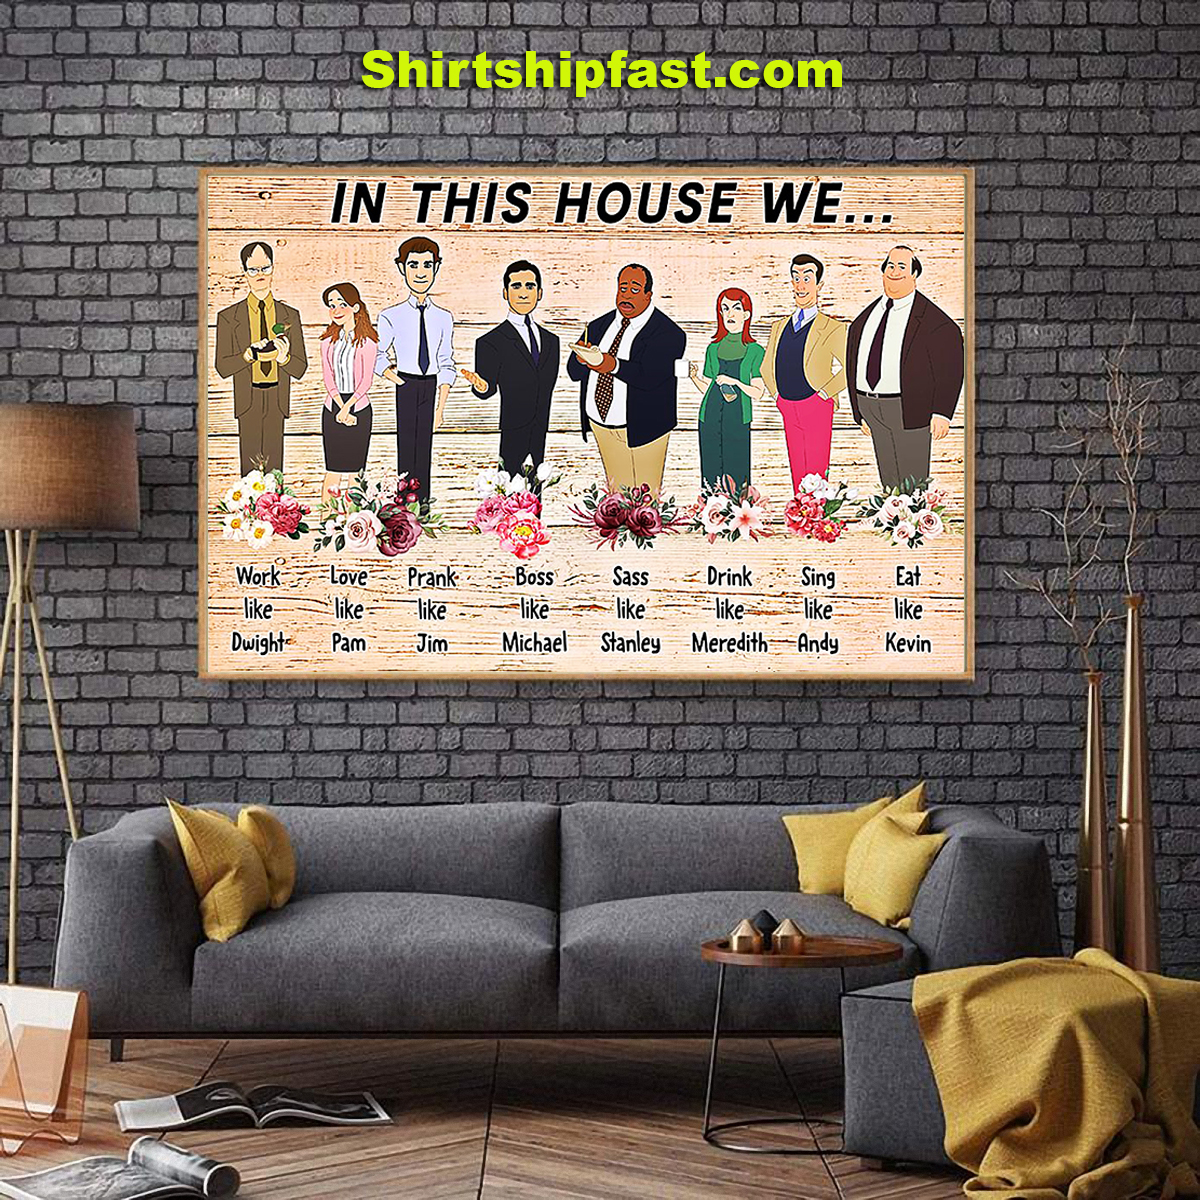 The office in this house we work like Dwigh poster - Picture 1